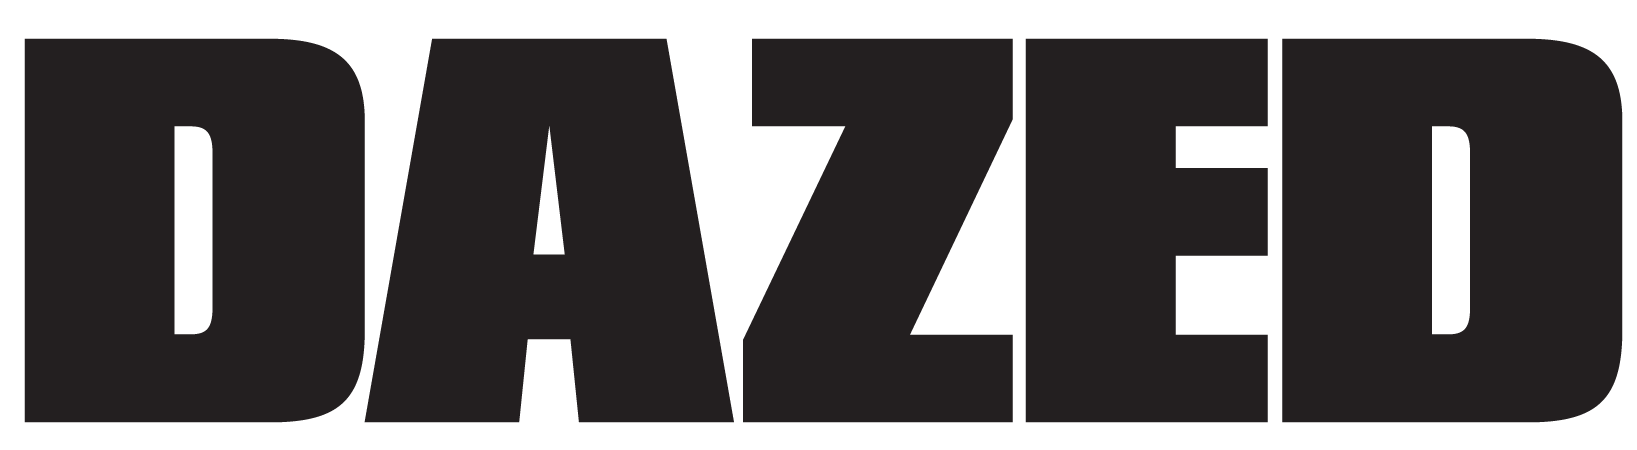 The Dazed logo